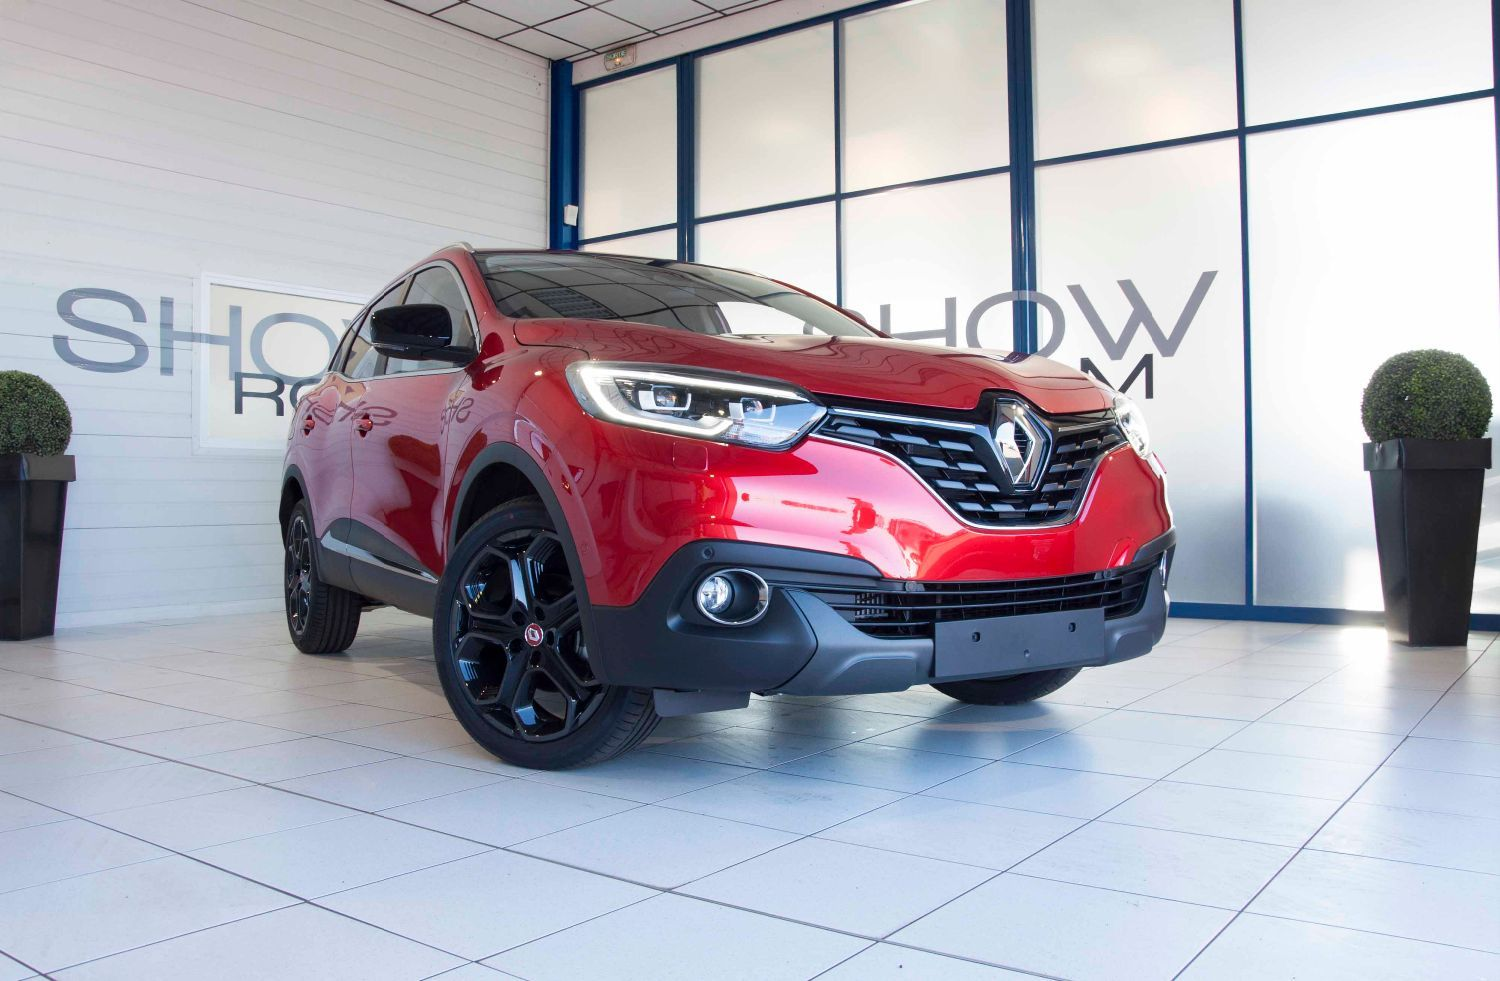 voiture renault kadjar 1 6 dci 130 ch energy black edition occasion diesel 2017 20 km. Black Bedroom Furniture Sets. Home Design Ideas